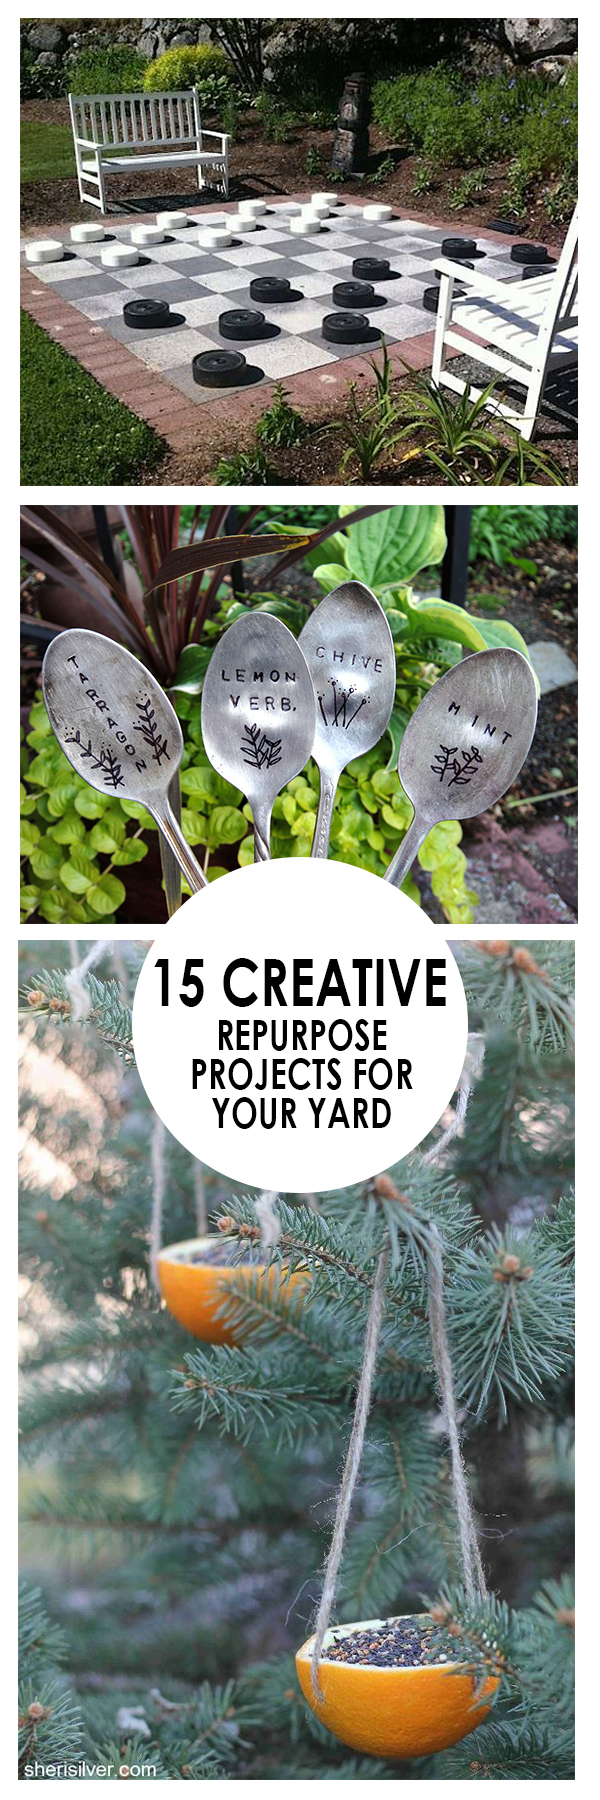 Yard repurpose projects, repurpose DIYs, gardening, yard projects, DIY yard projects, popular pin, landscape ideas.